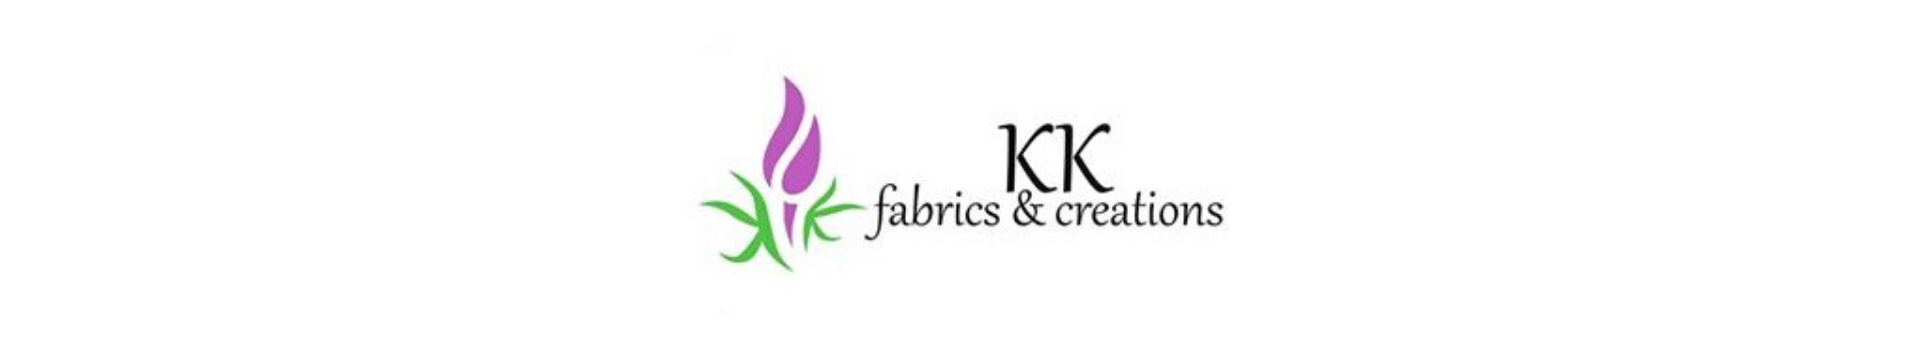 KK fabrics and creations cover landing